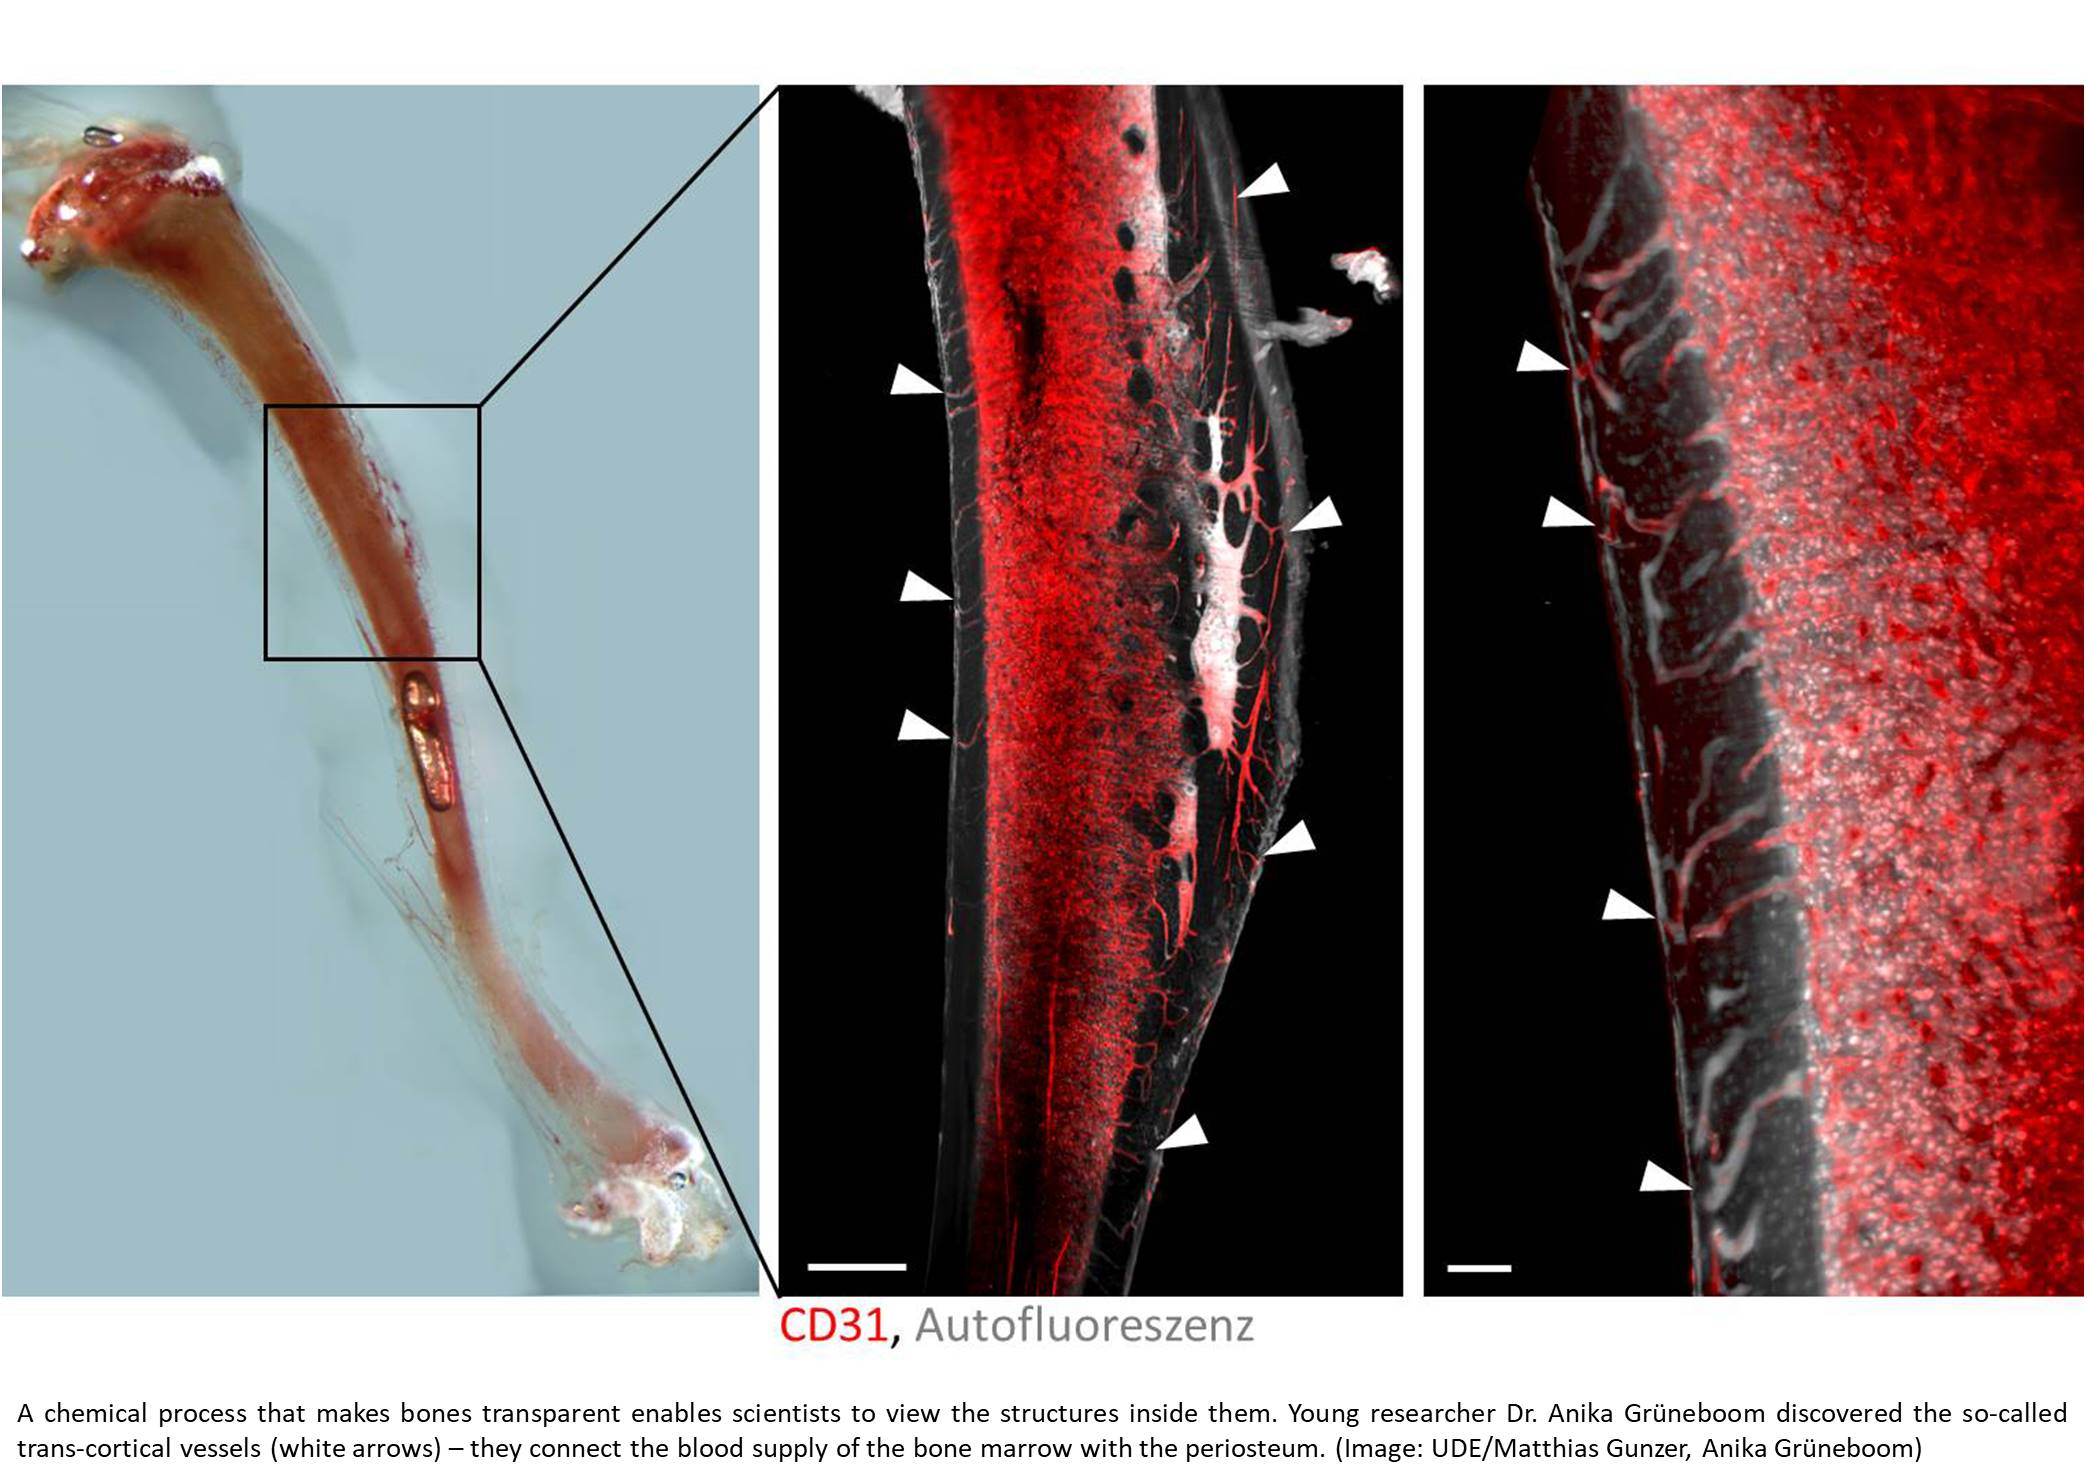 Blood vessel system in bones discovered!